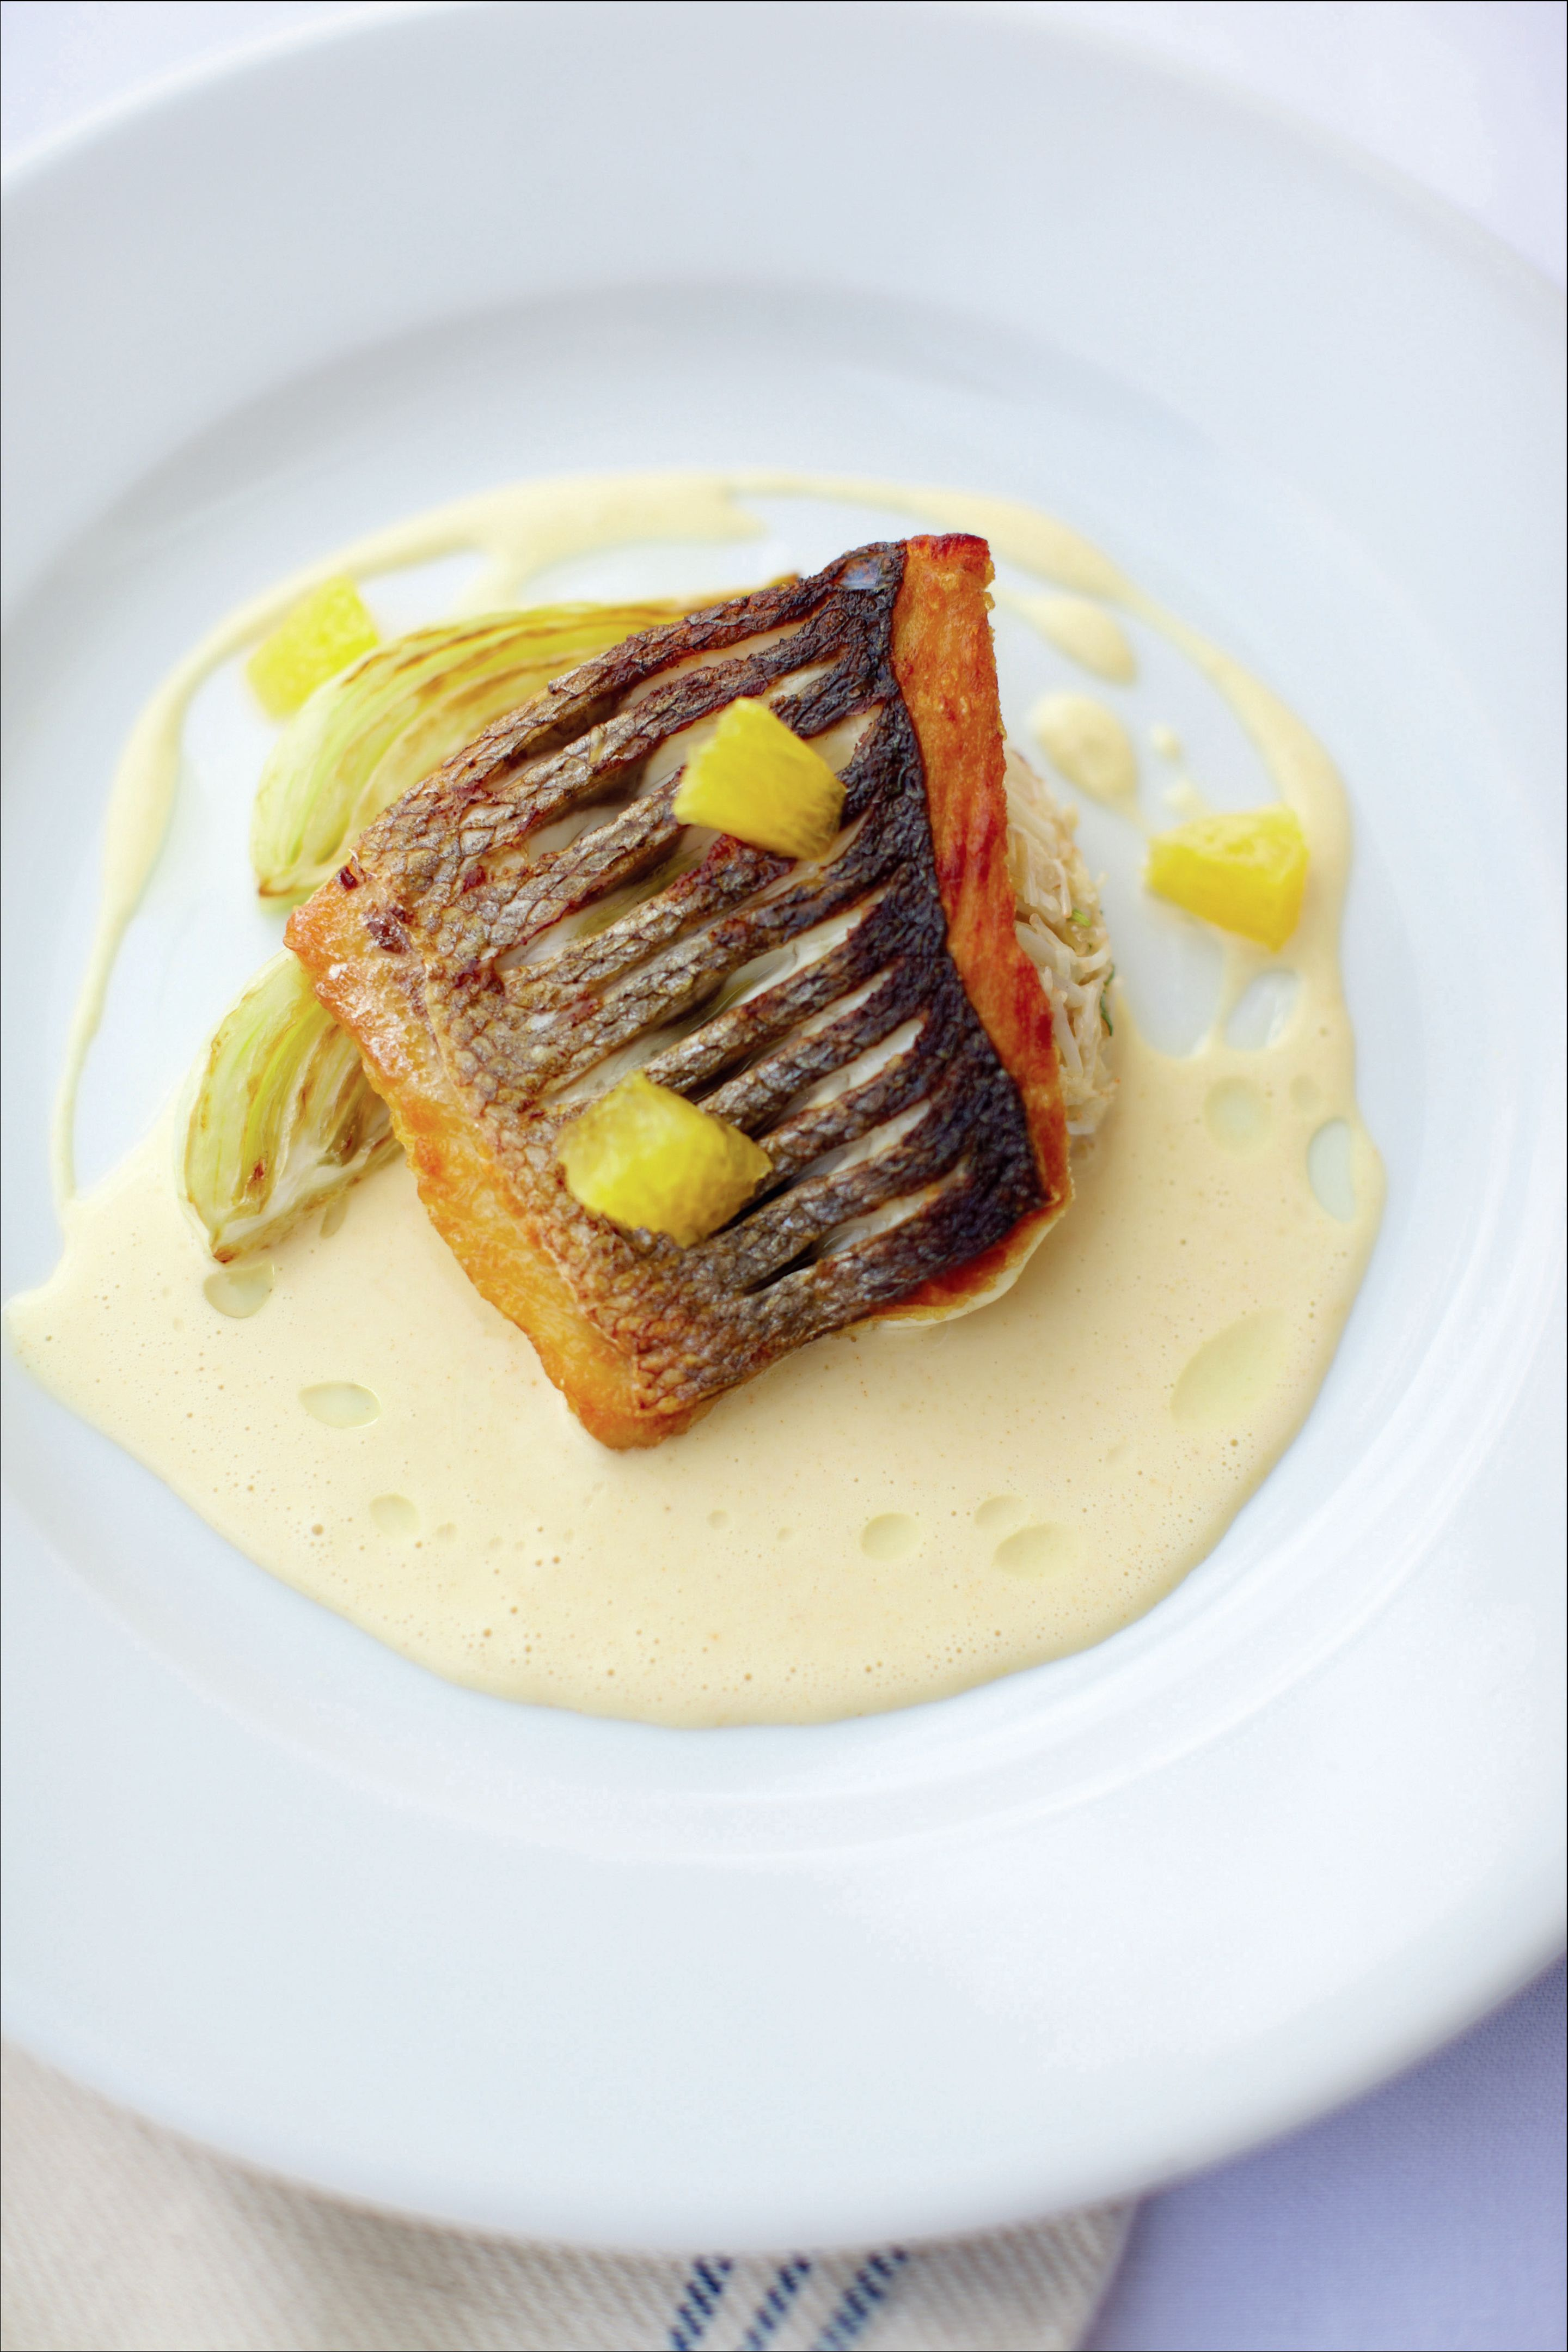 Sea bass with crab mayonnaise, roasted fennel and orange